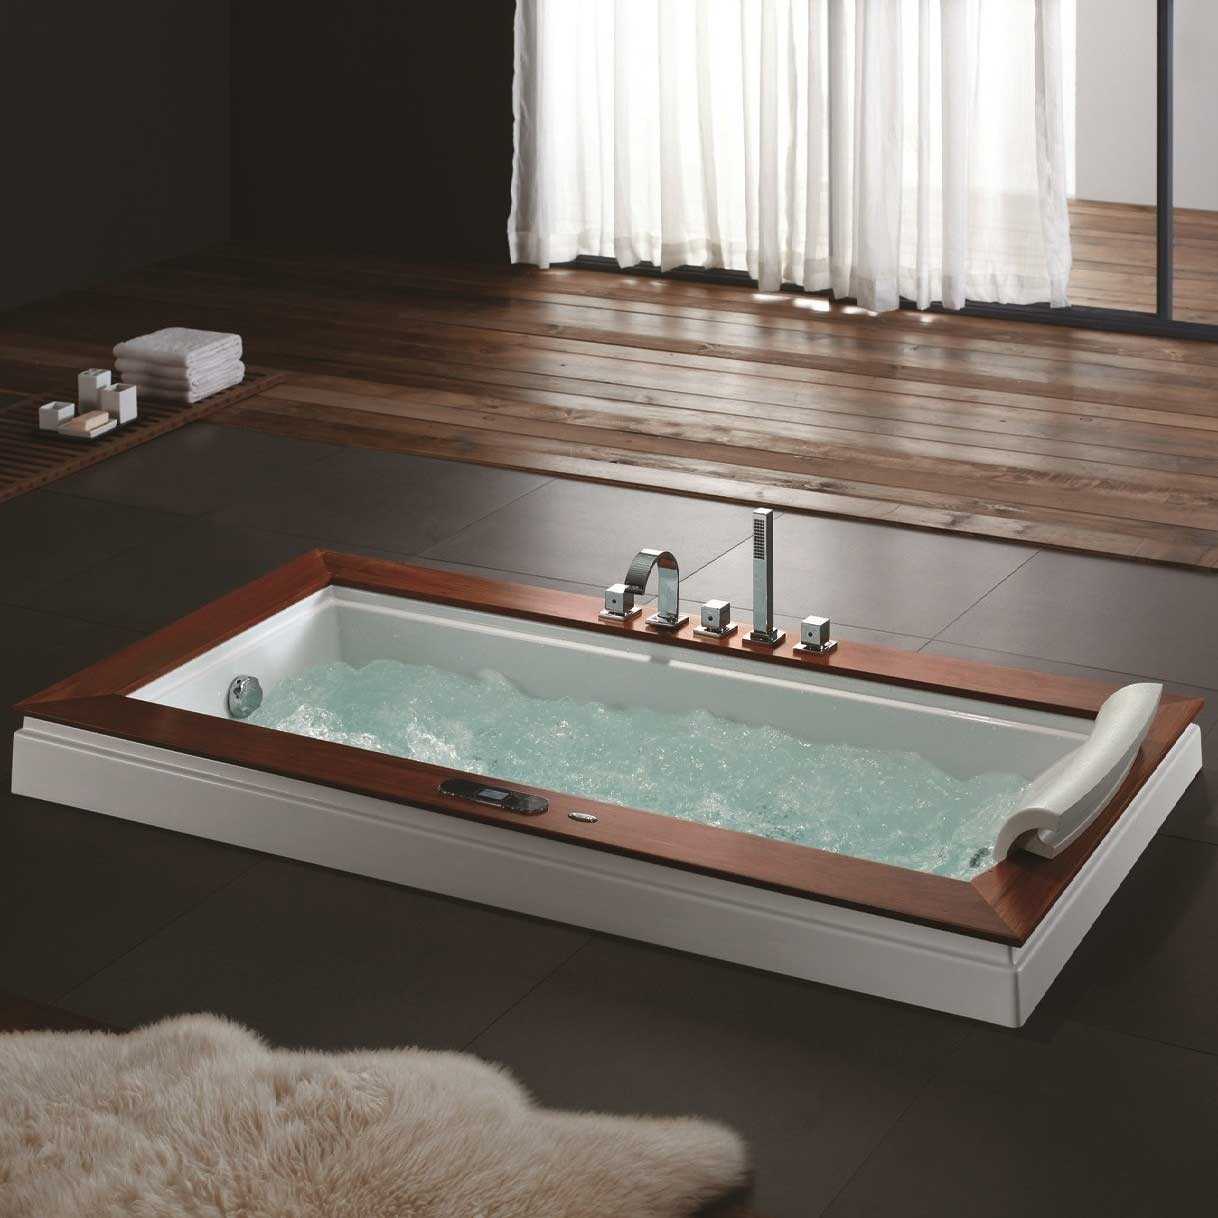 Santa barbara whirlpool tub - Bathtub in shower ...